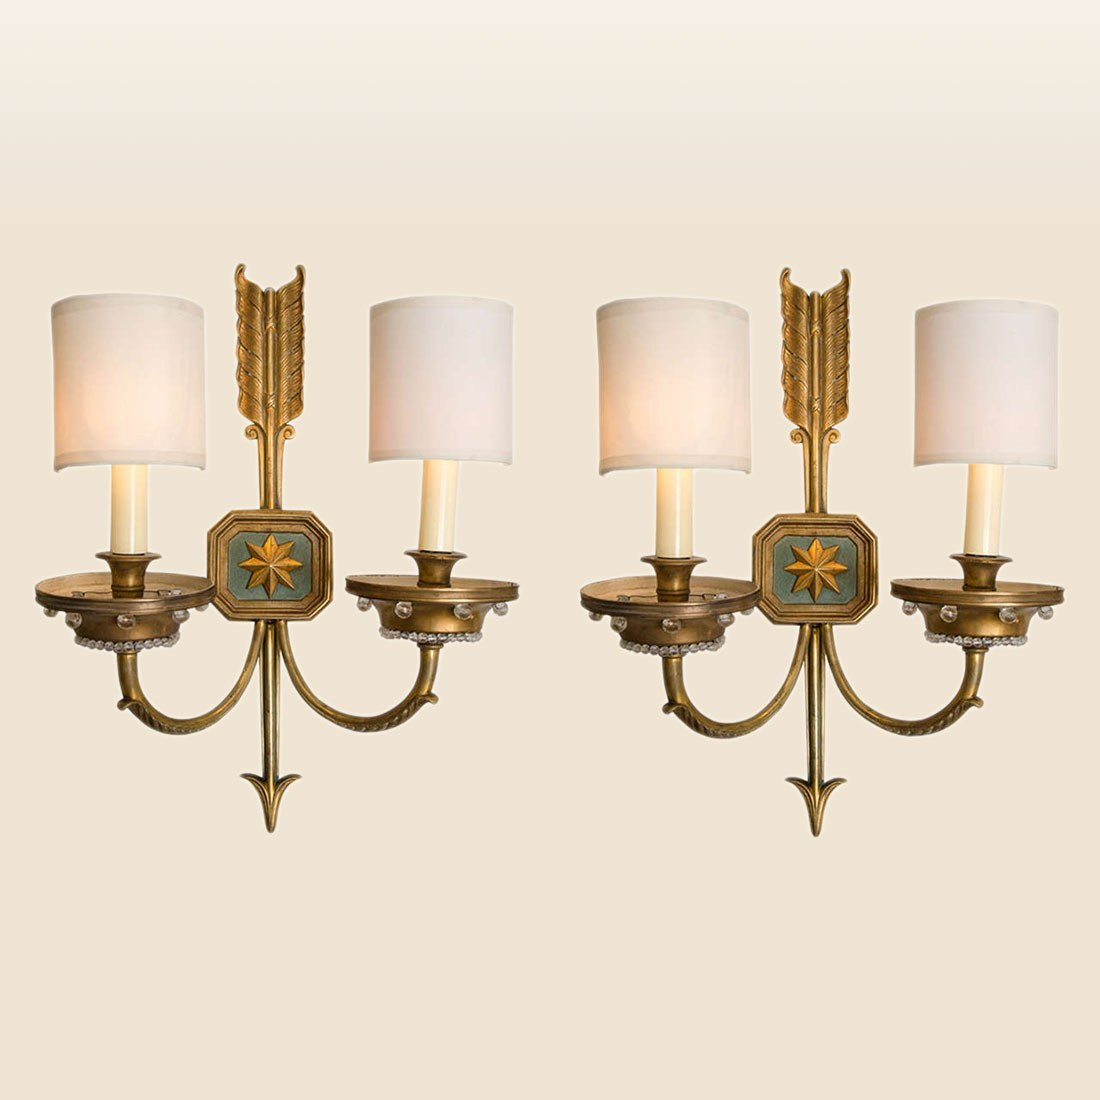 Valerie Wade Lw413 1930S French Times Arrow Wall Lights 01